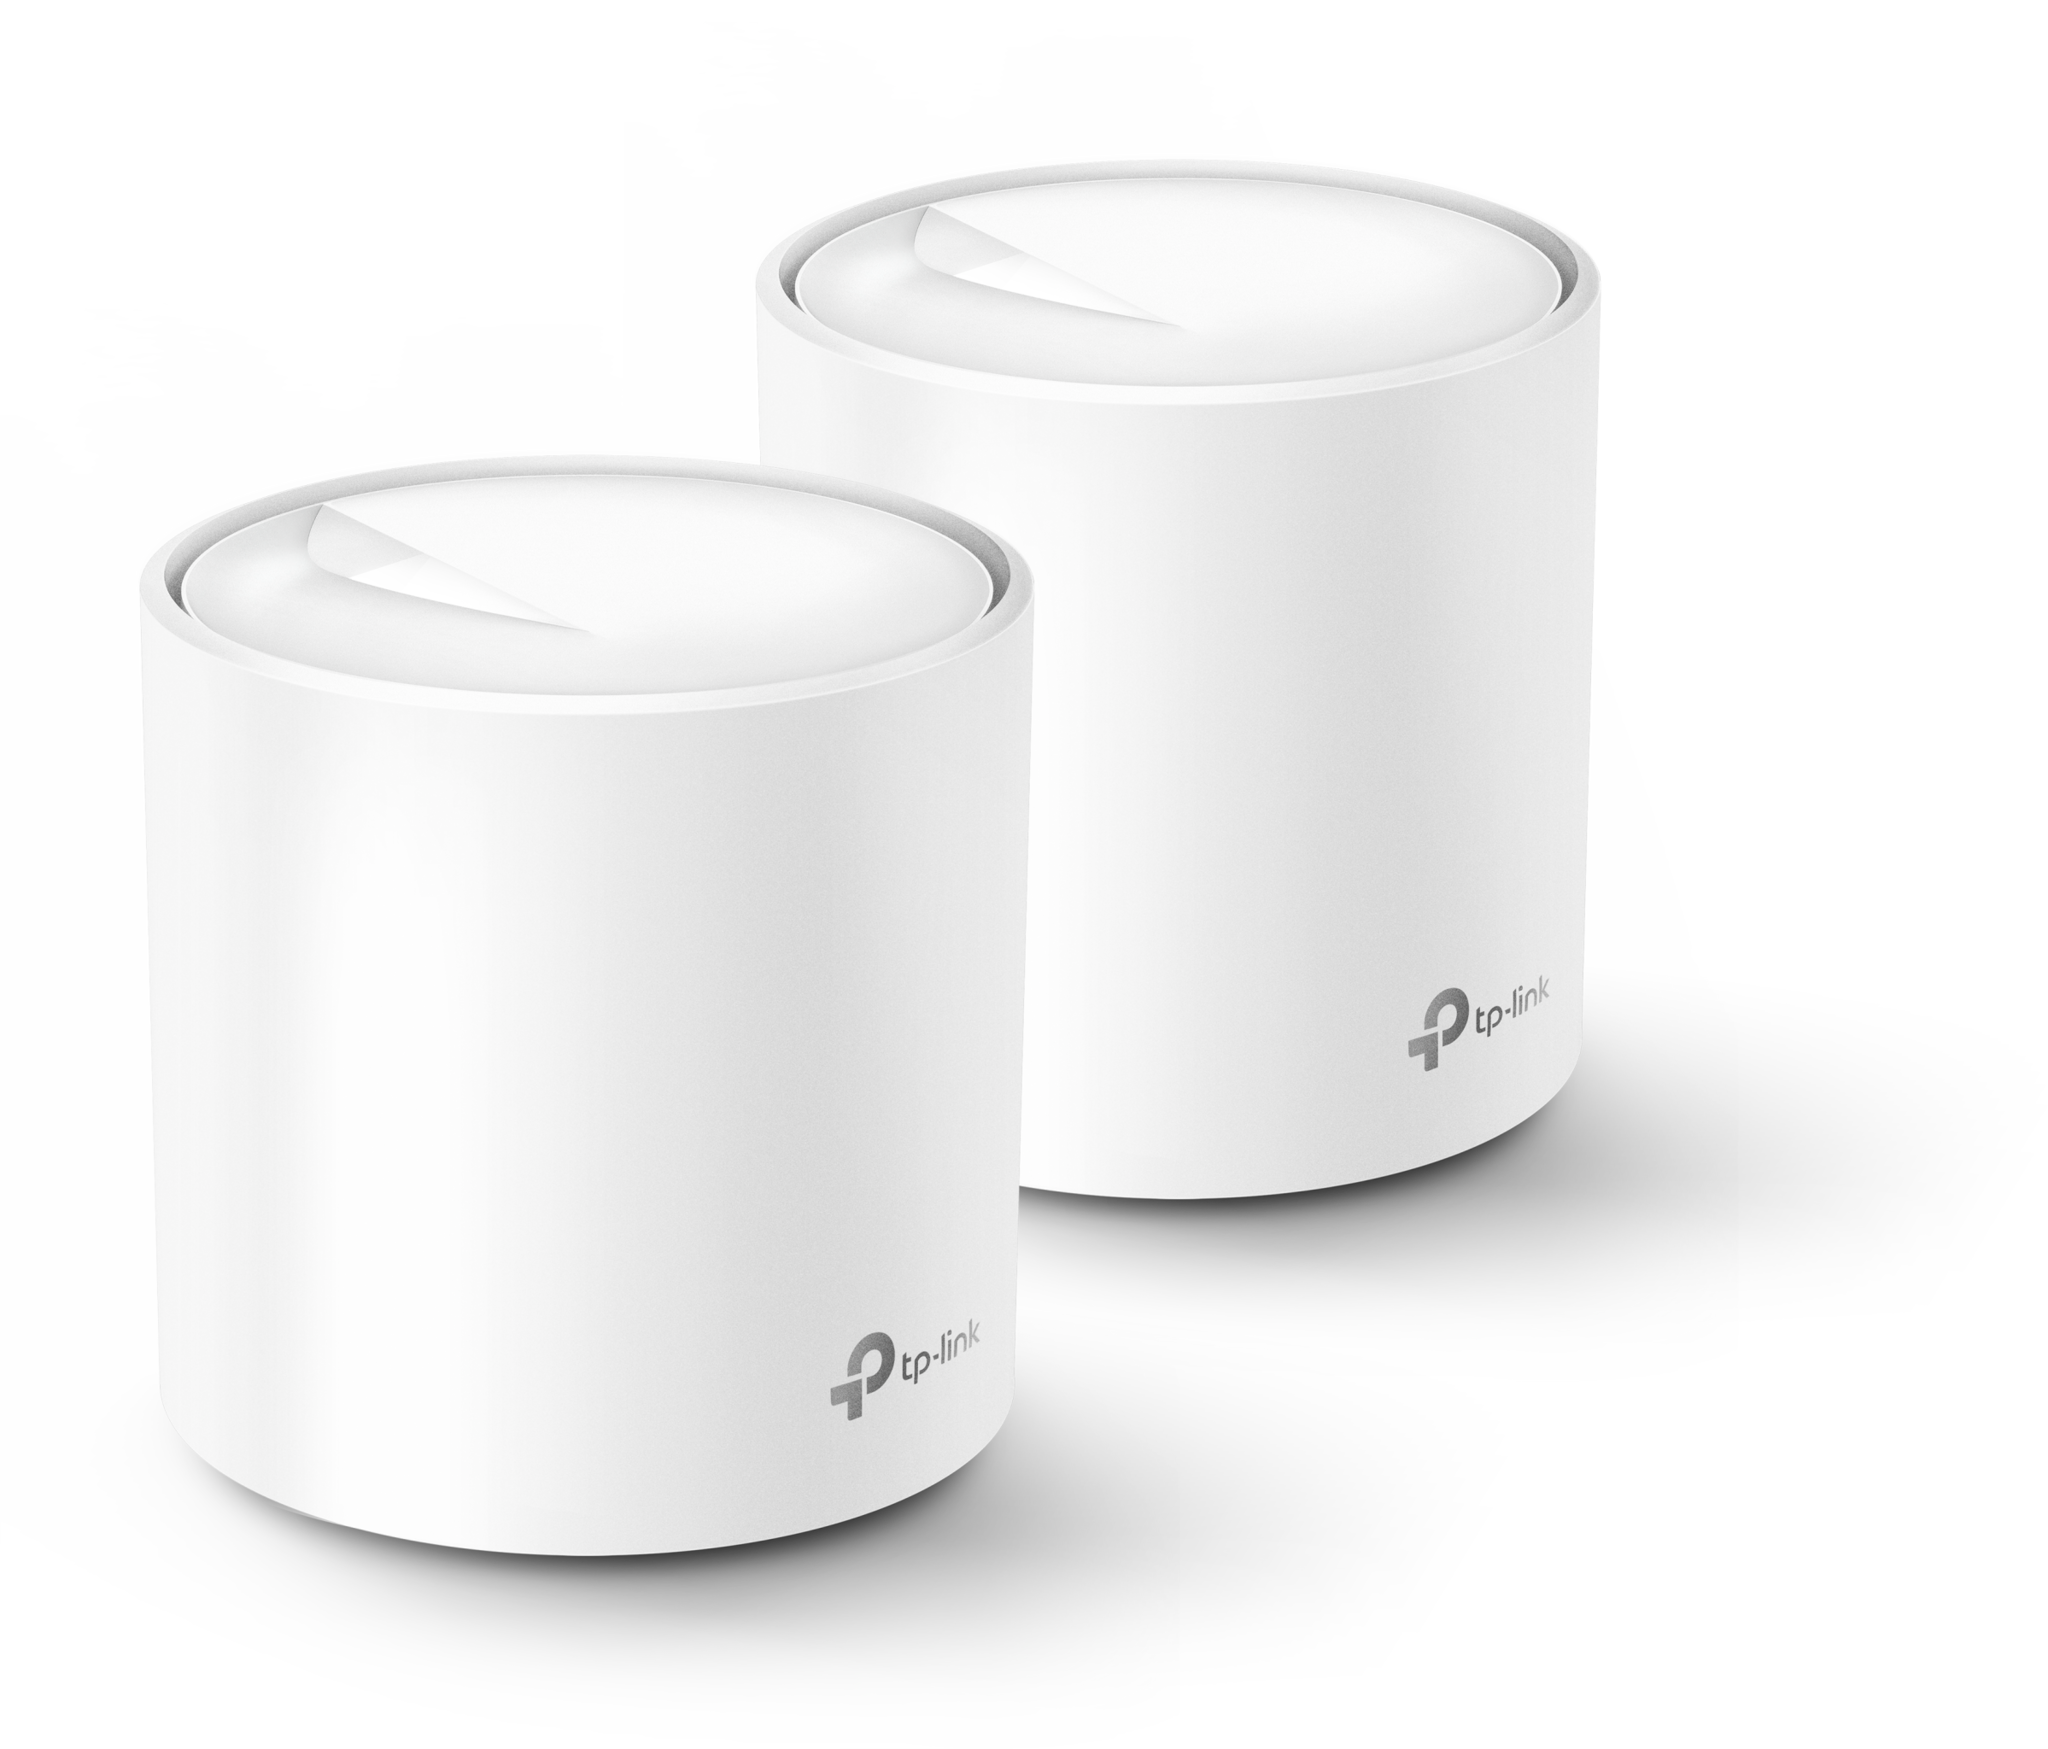 tp-link-deco-x20-wi-fi-6-mesh-router-2-pack.png